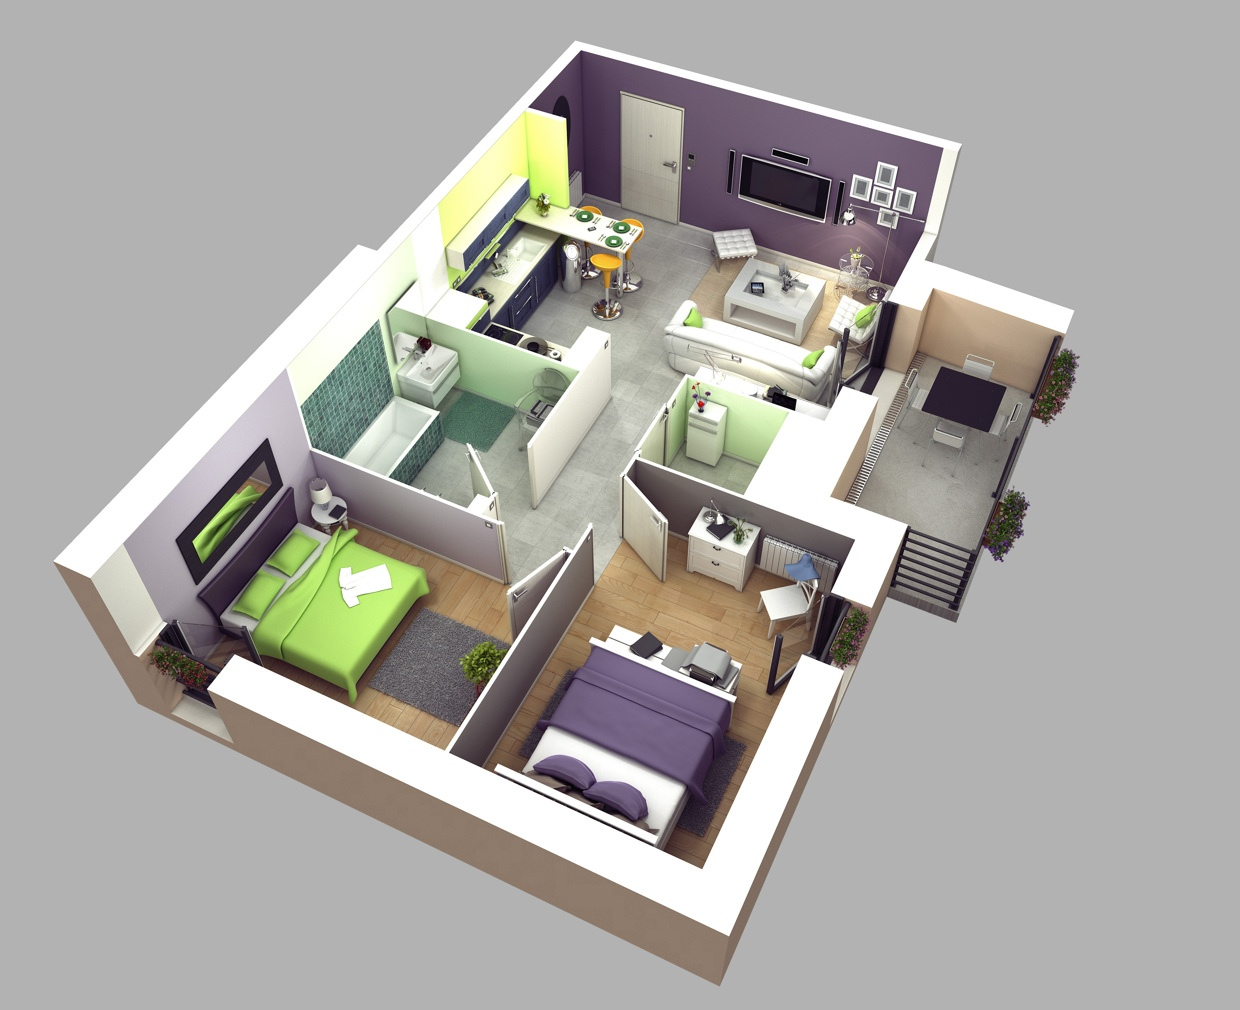 50 3d floor plans lay out designs for 2 bedroom house or for 3 bedroom house plan design 3d